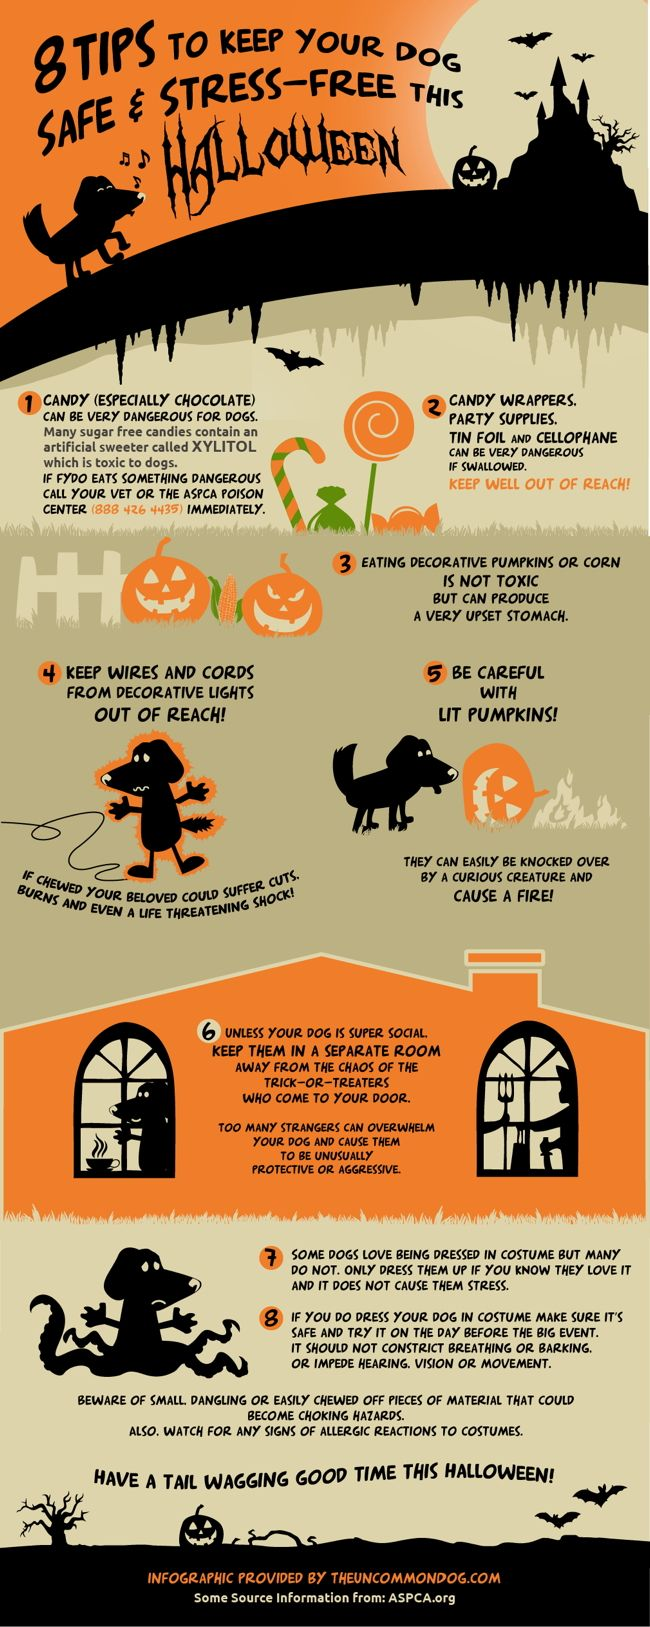 Keeping Pets Safe on Halloween Posted on October 29, 2013